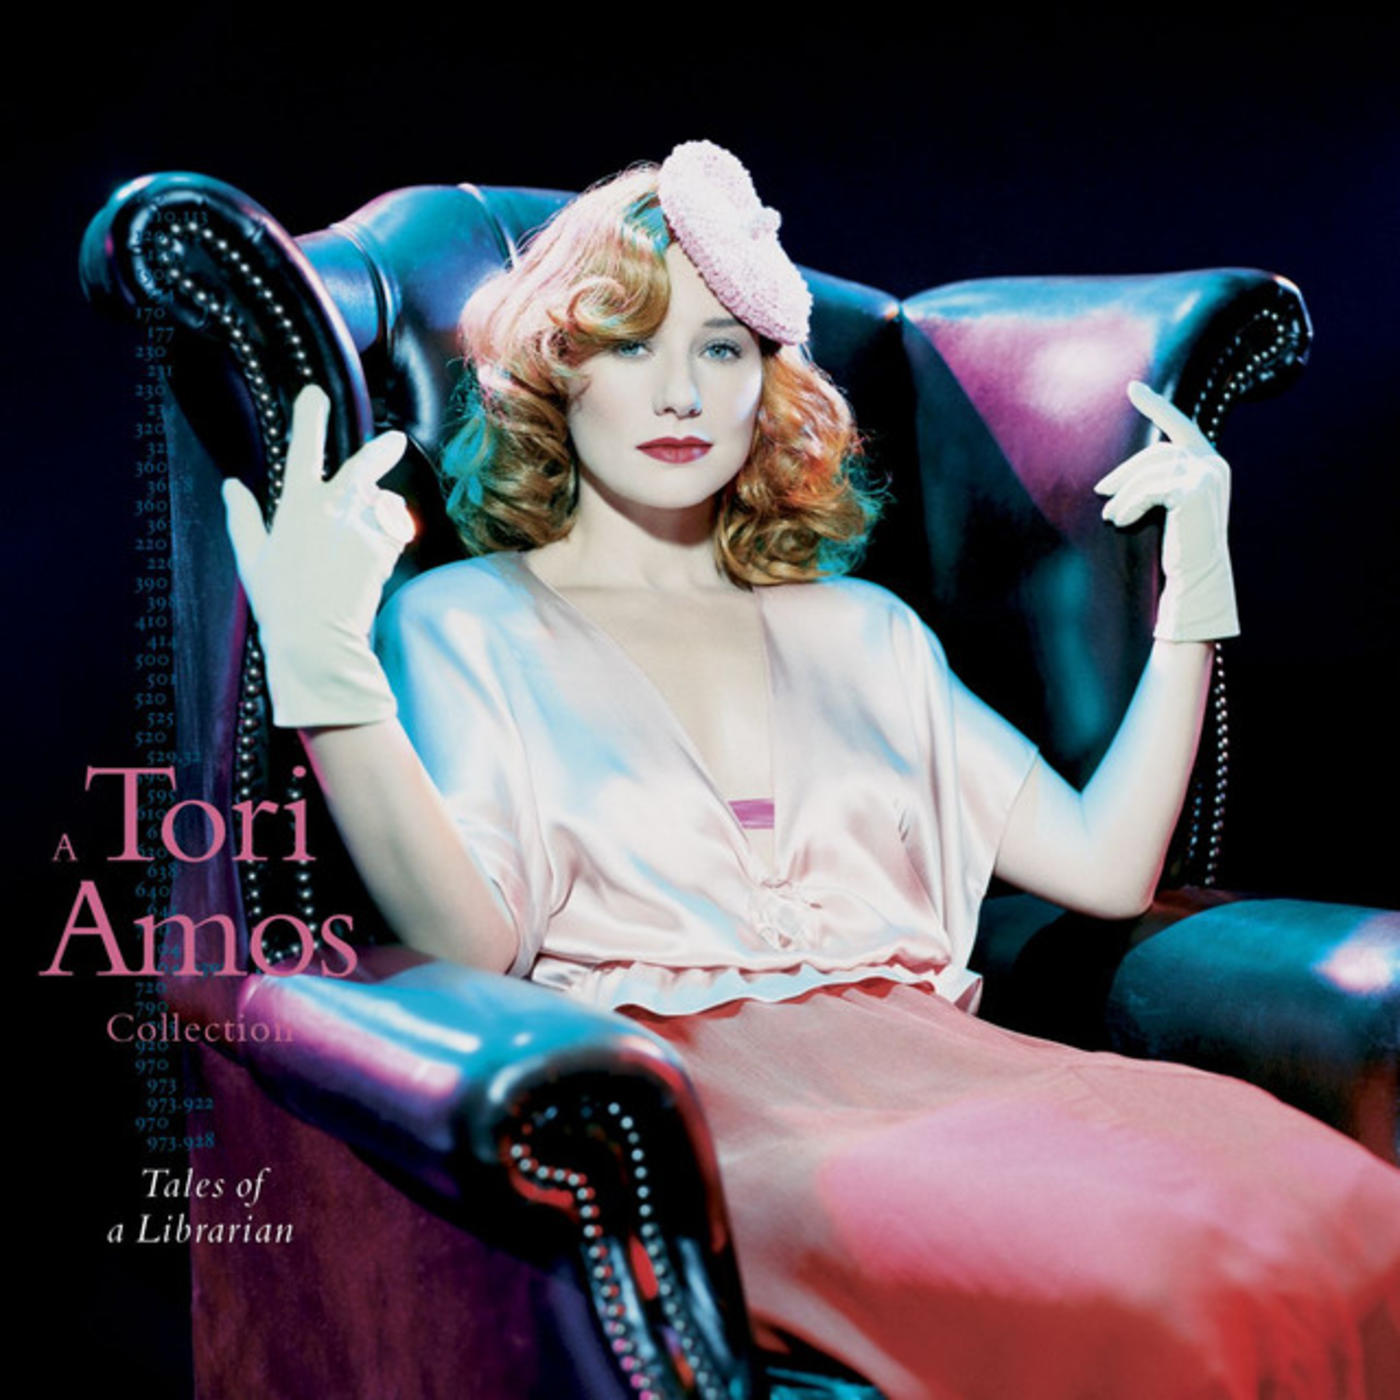 A Tori Amos Collection: Tales Of A Librarian